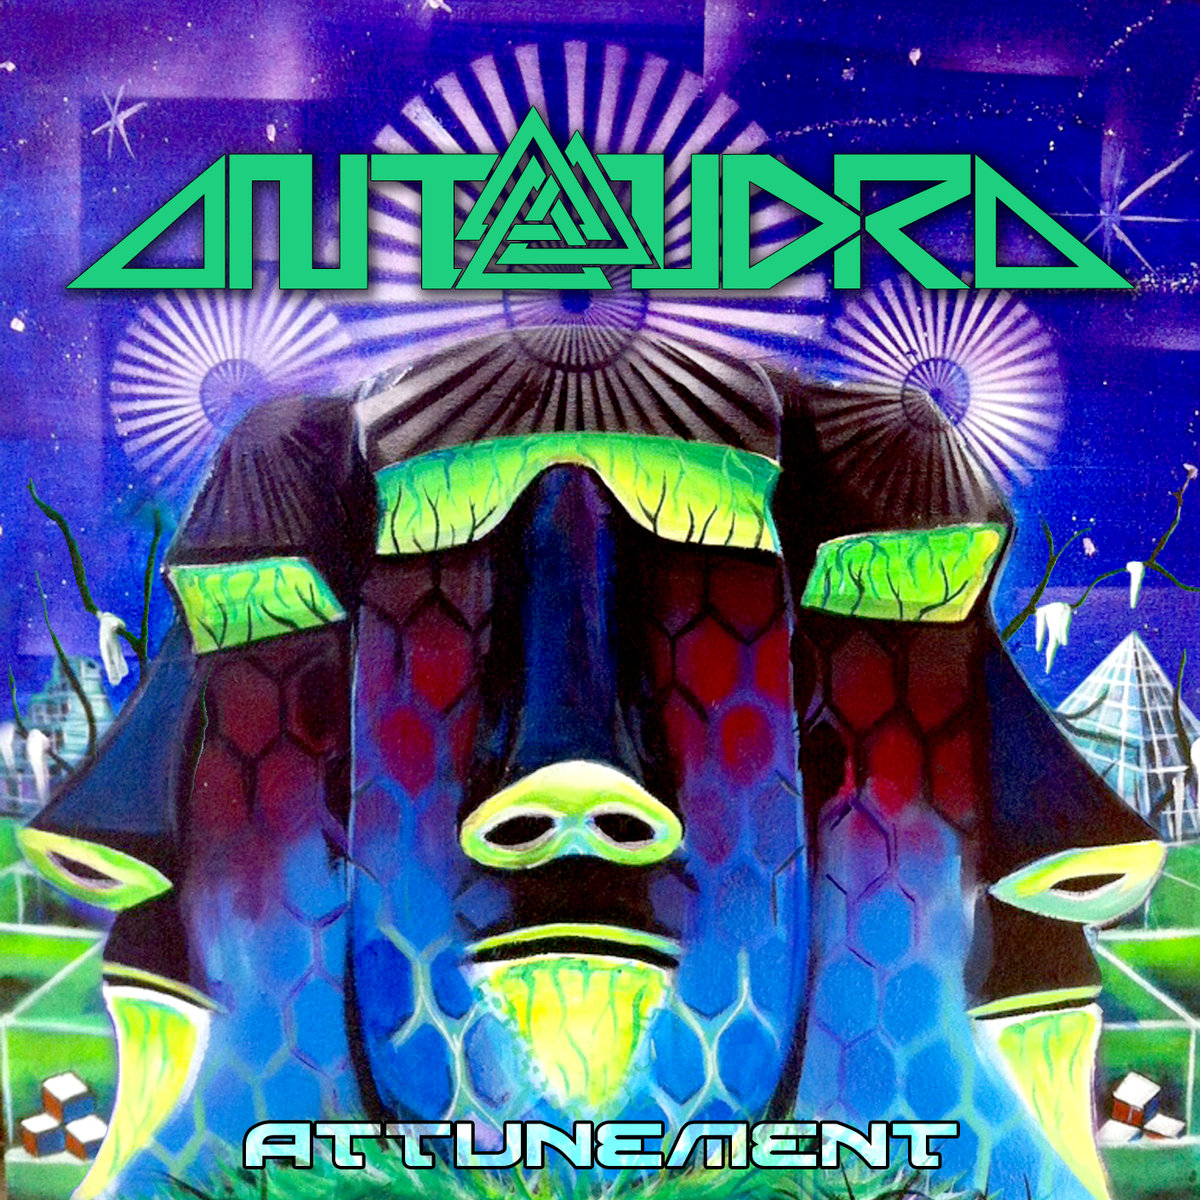 Antandra - Tiger's Eye @ 'Attunement EP' album (ambient, chillgressive)